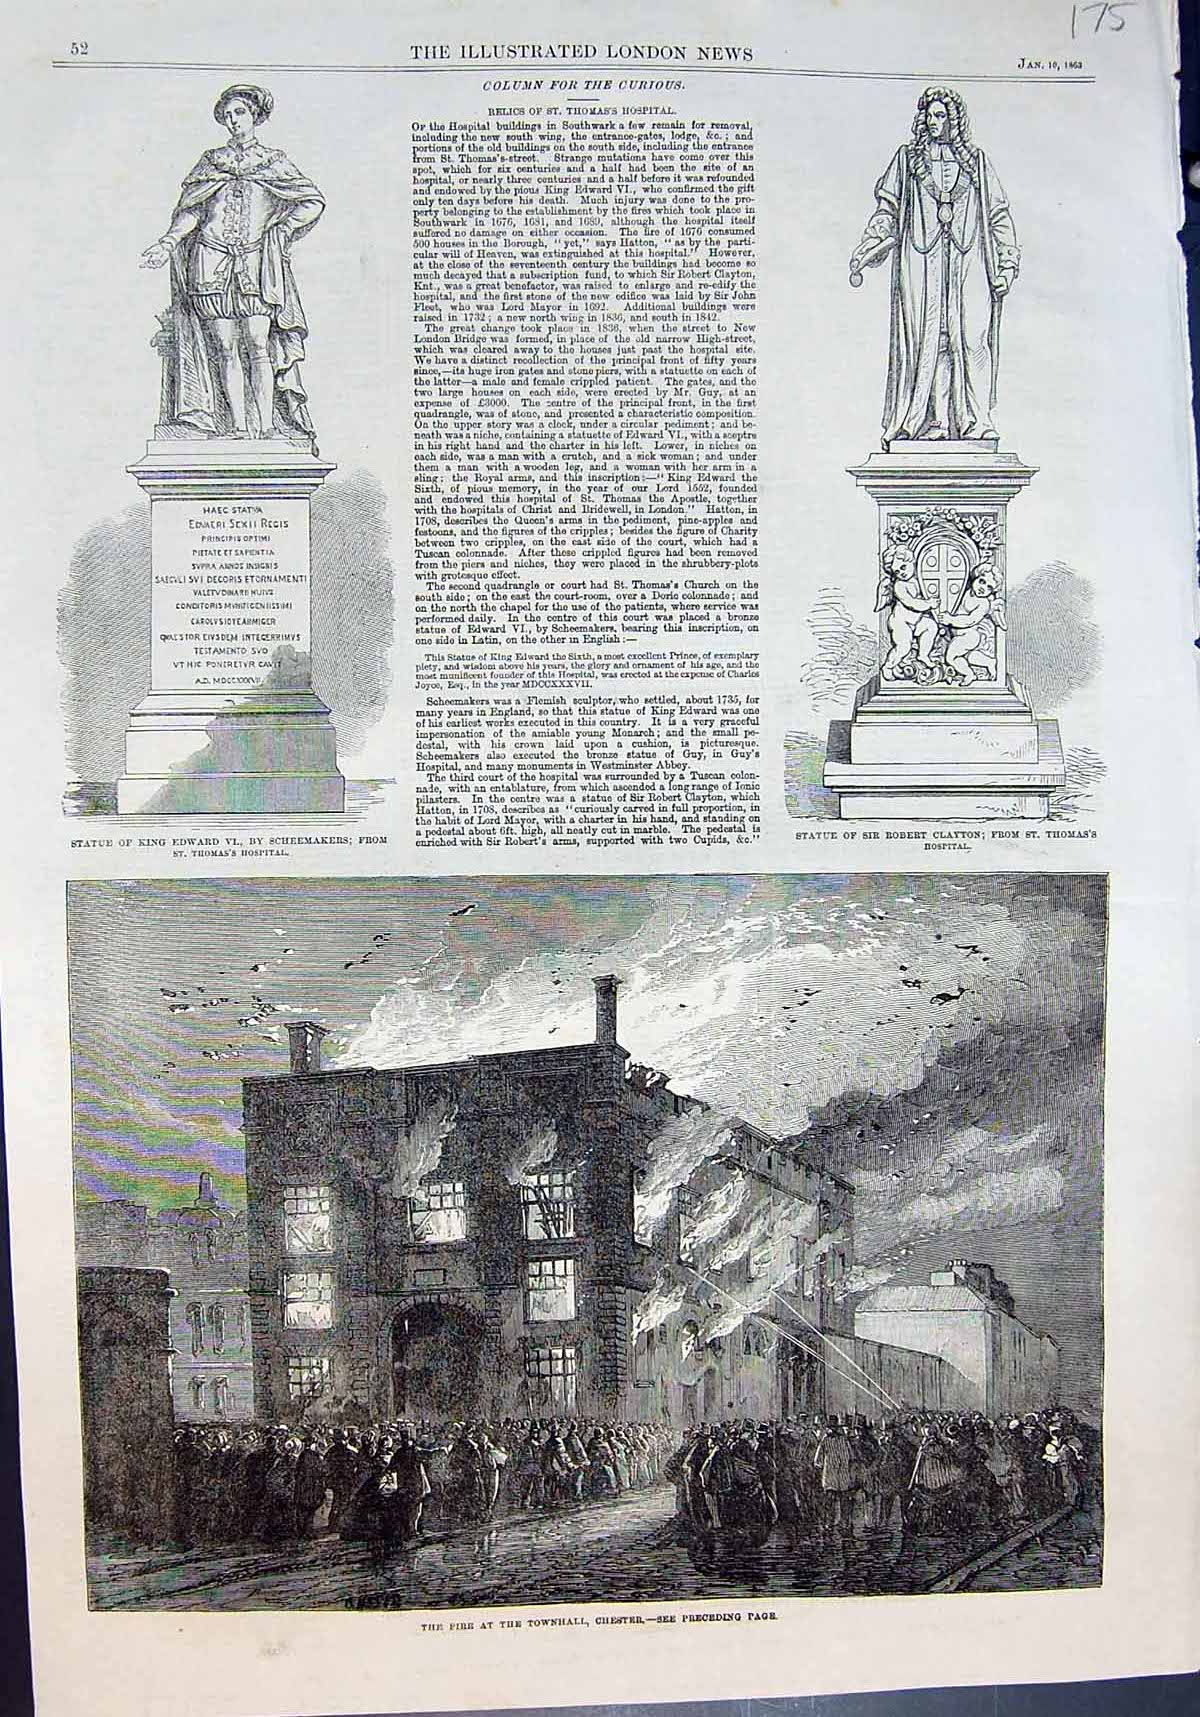 [Print Fire Townhall Chester St Thomas Hospital Statue King Edward Vi 18 175J642 Old Original]